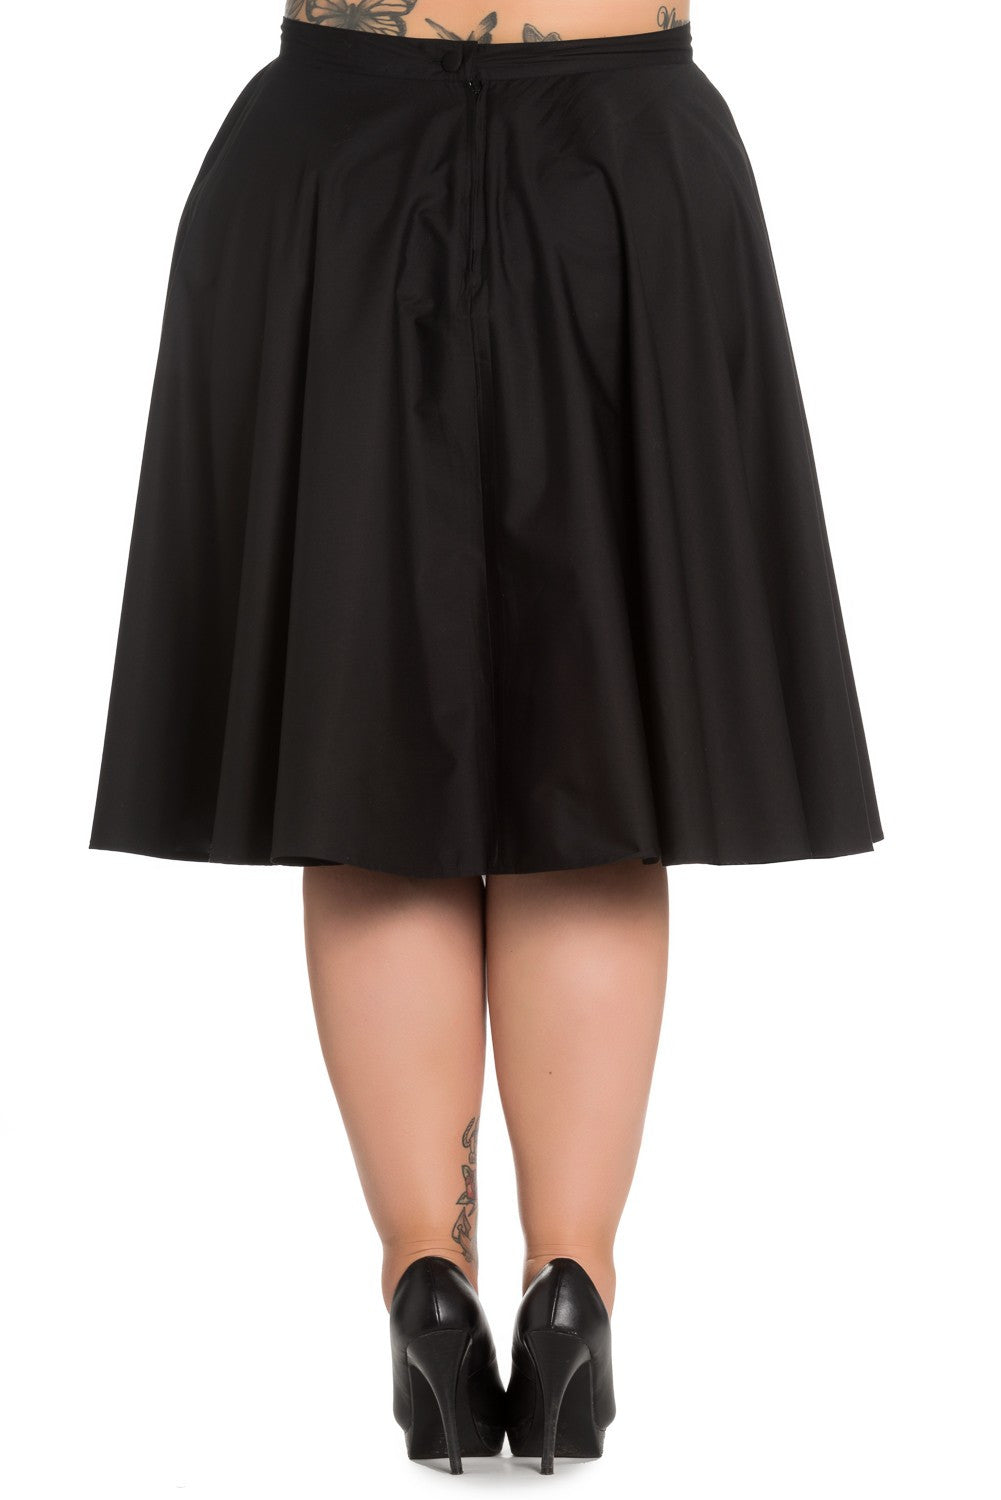 The Peggy Sue Swing Skirt in Curvy Size - SOLD OUT!